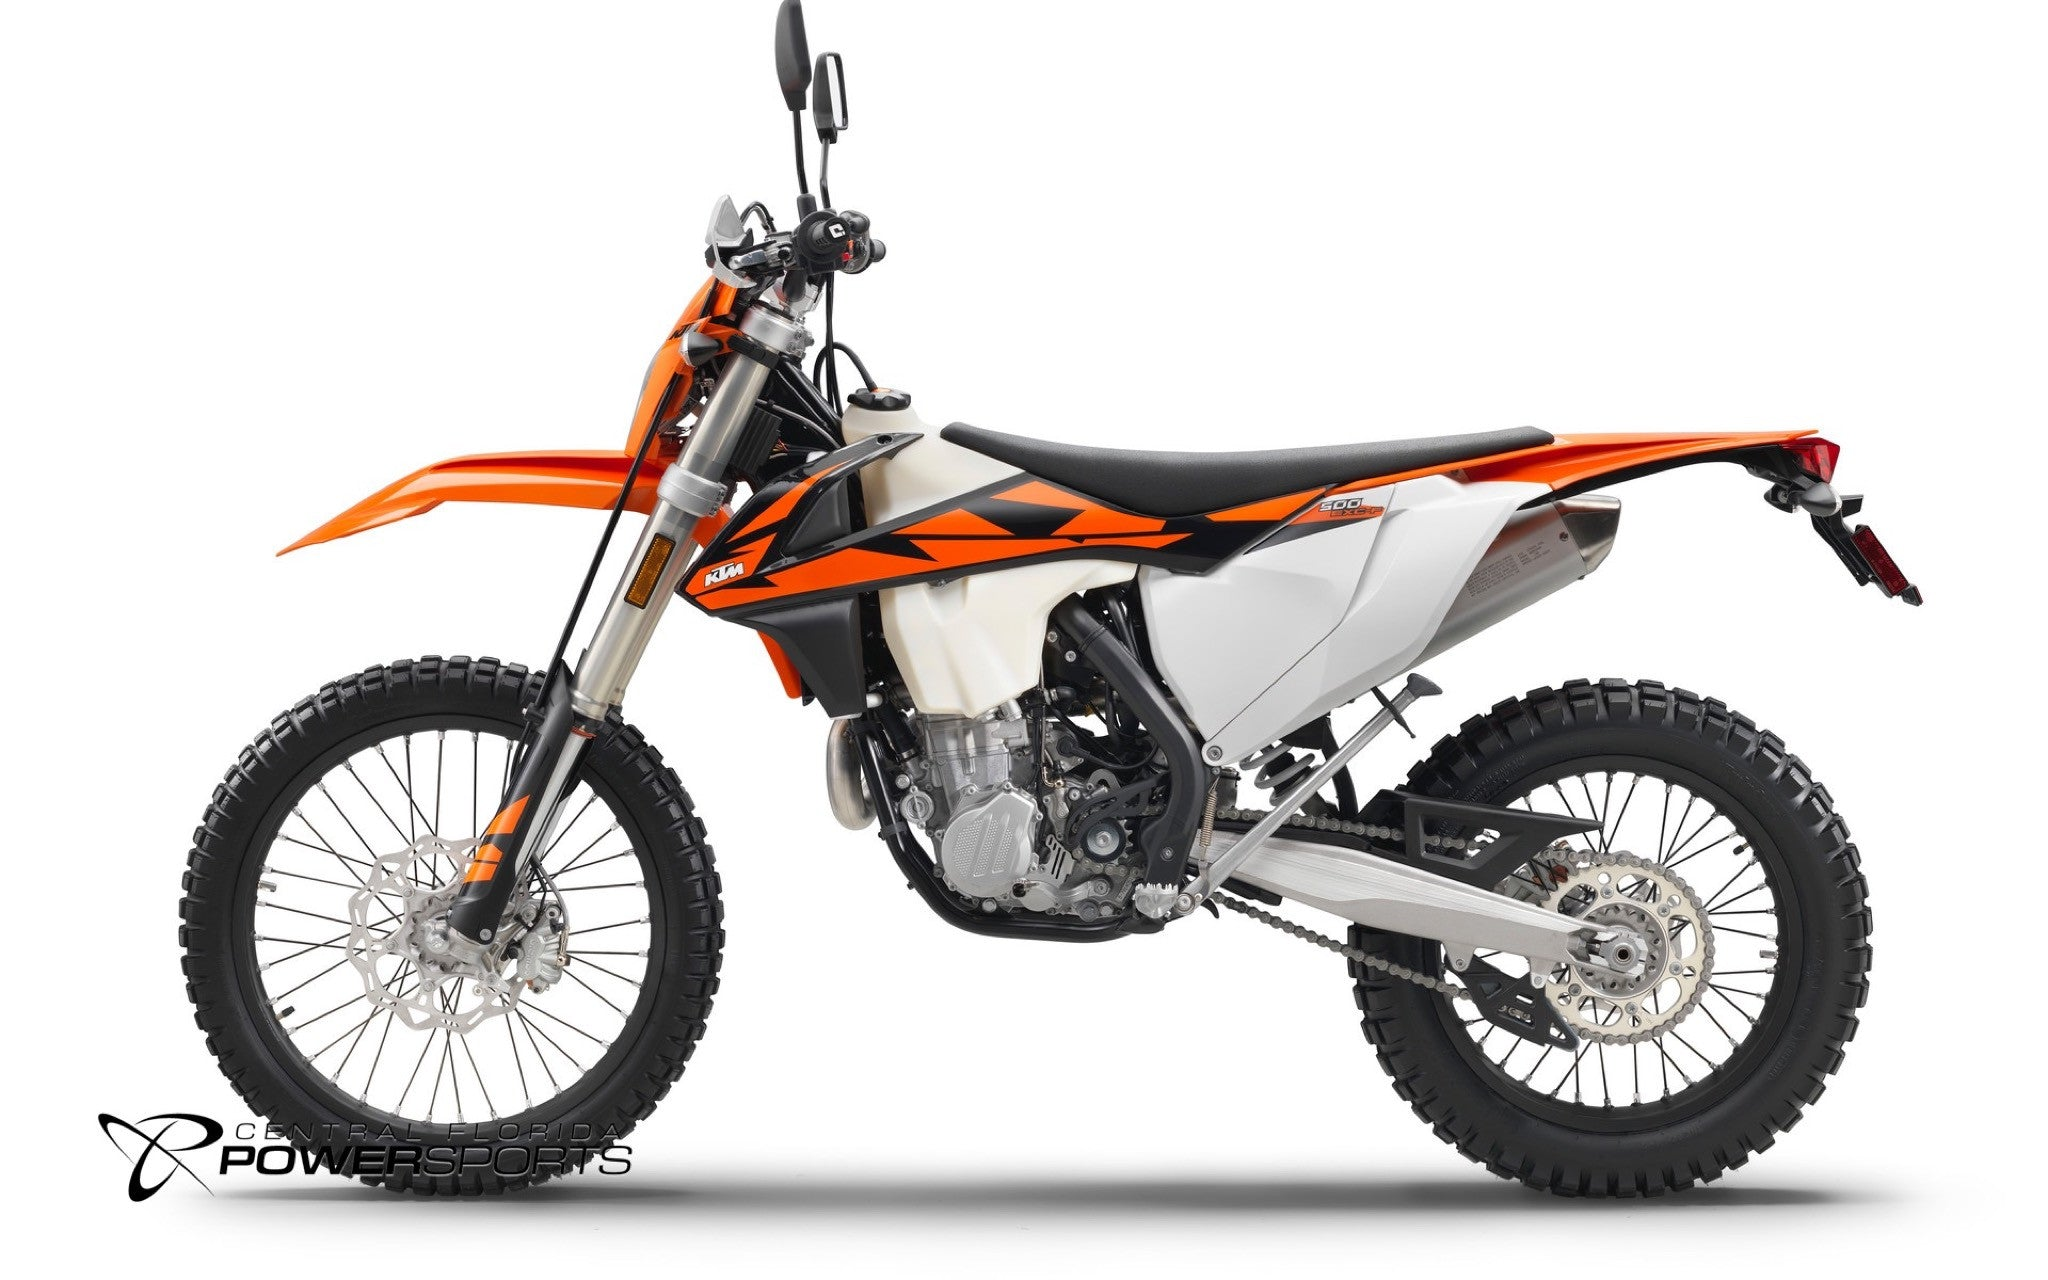 2018 ktm 500 exc f enduro dual sport motorcycle for sale kissimmee central florida powersports. Black Bedroom Furniture Sets. Home Design Ideas